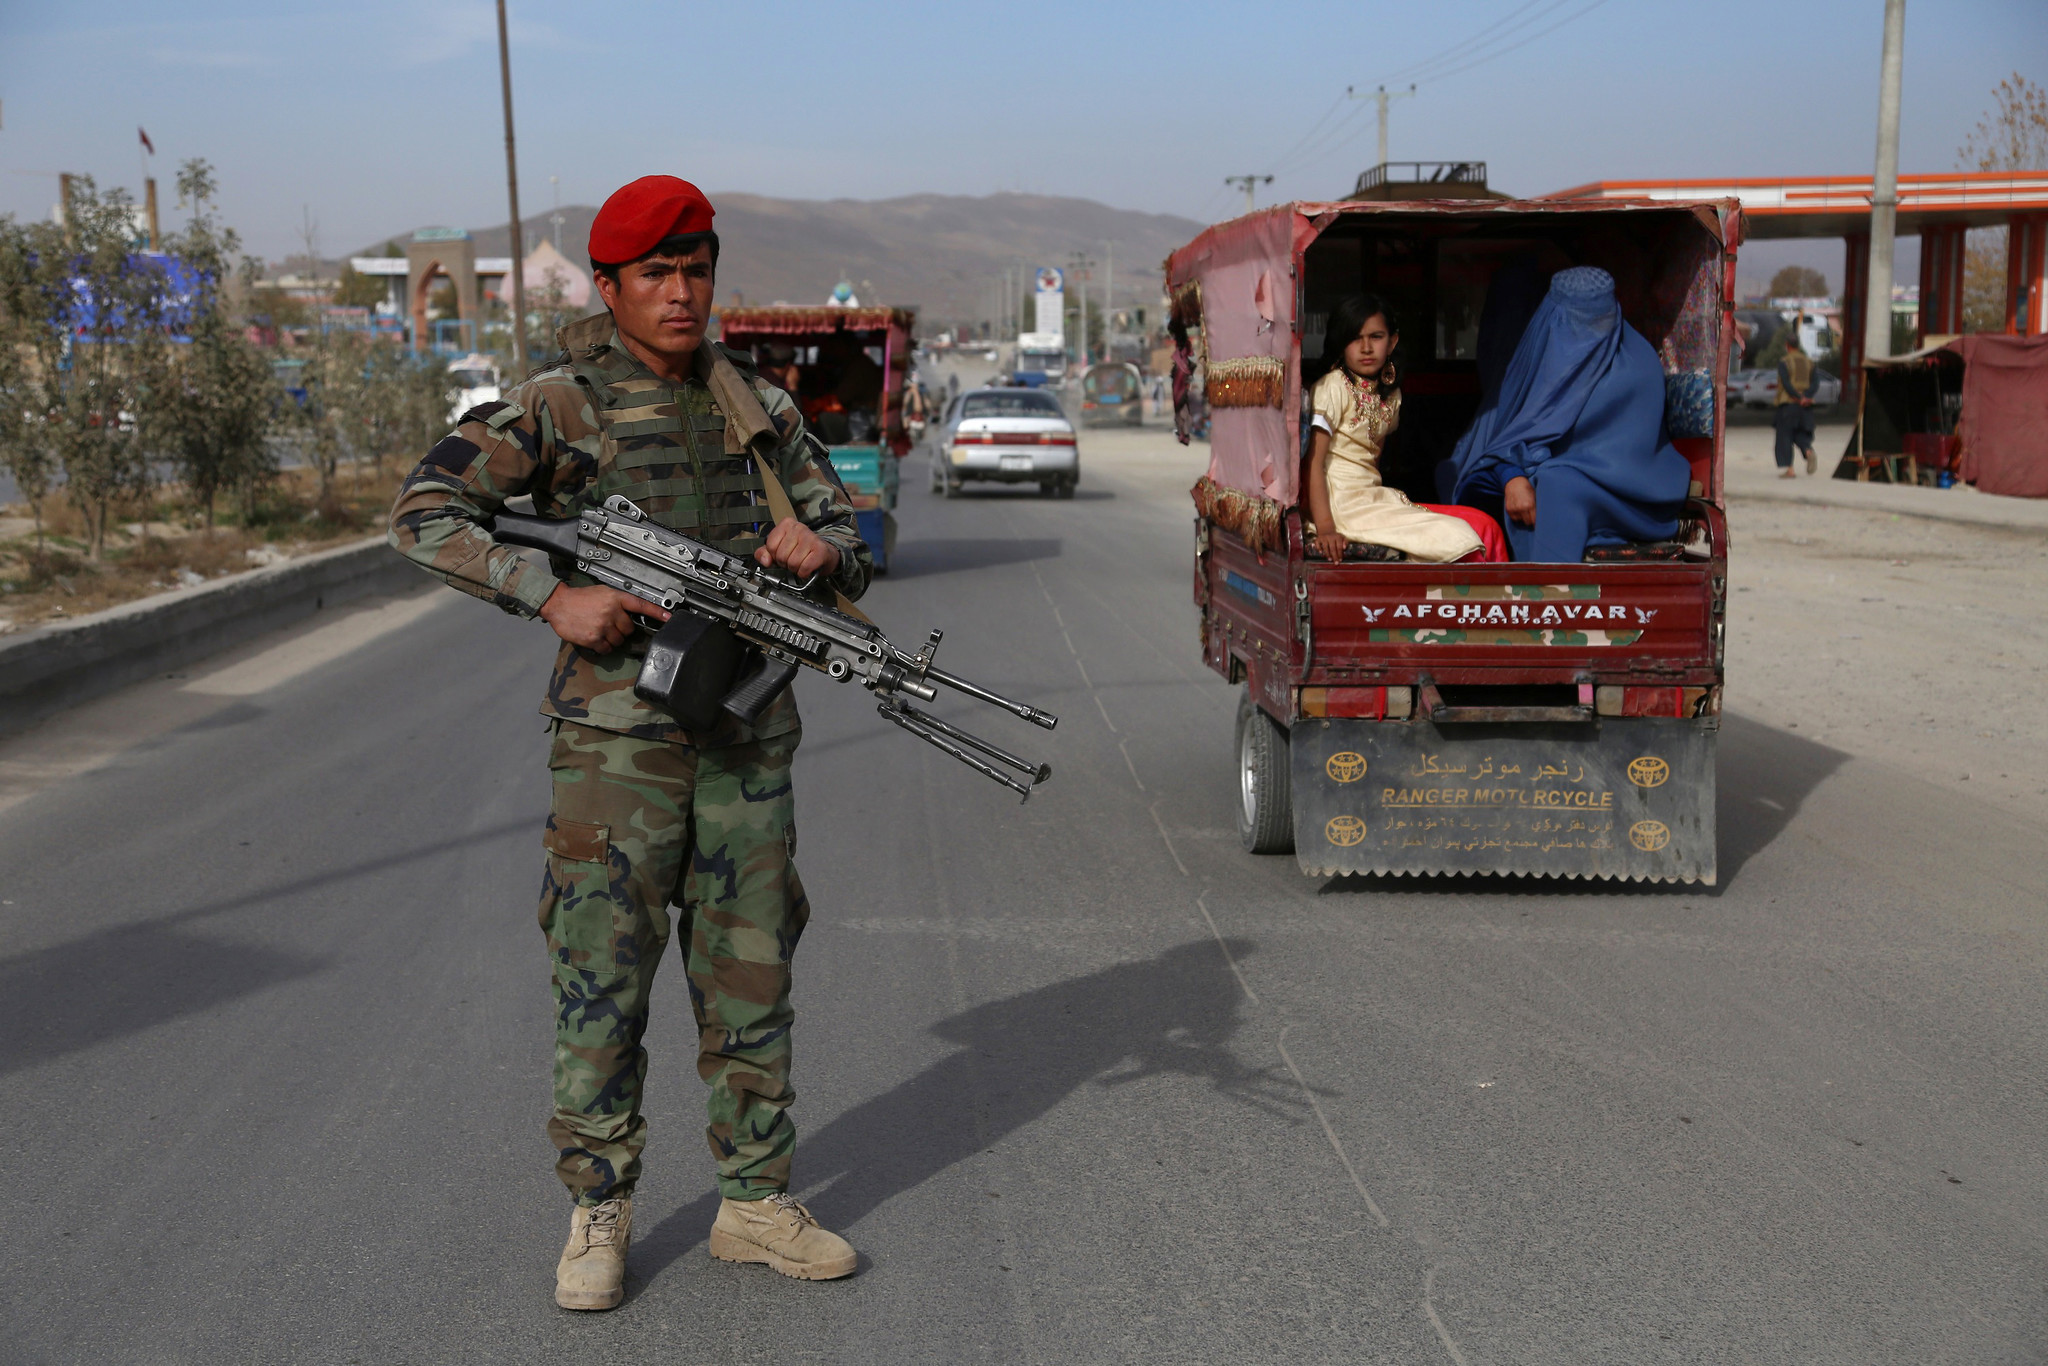 Several Afghan militia members killed in insider attack, officials say